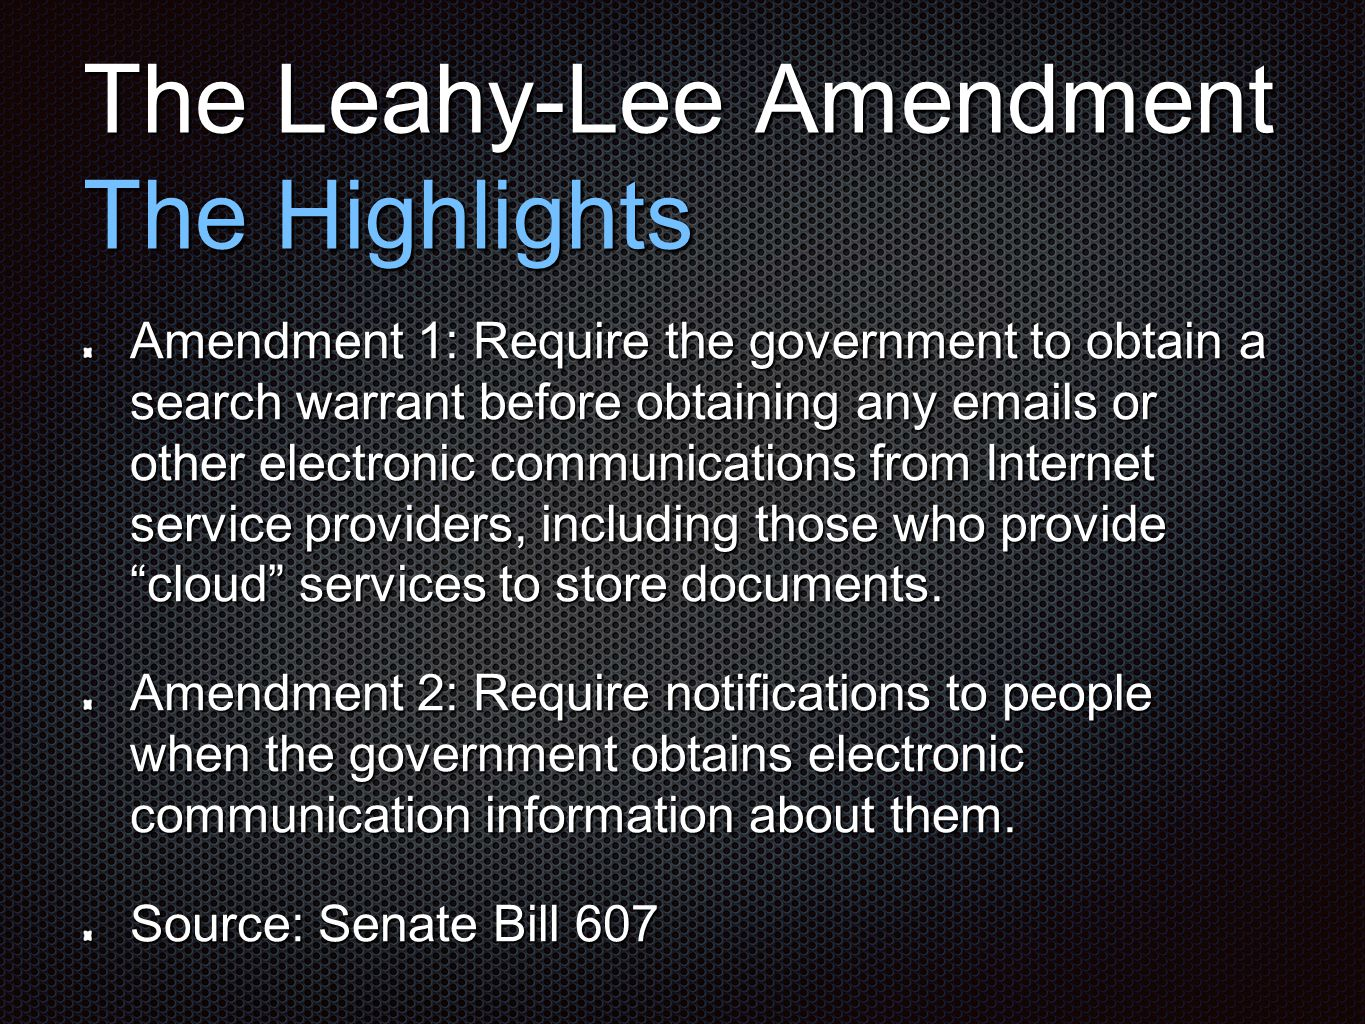 The Leahy-Lee Amendment The Highlights Amendment 1: Require the government to obtain a search warrant before obtaining any emails or other electronic communications from Internet service providers, including those who provide cloud services to store documents.